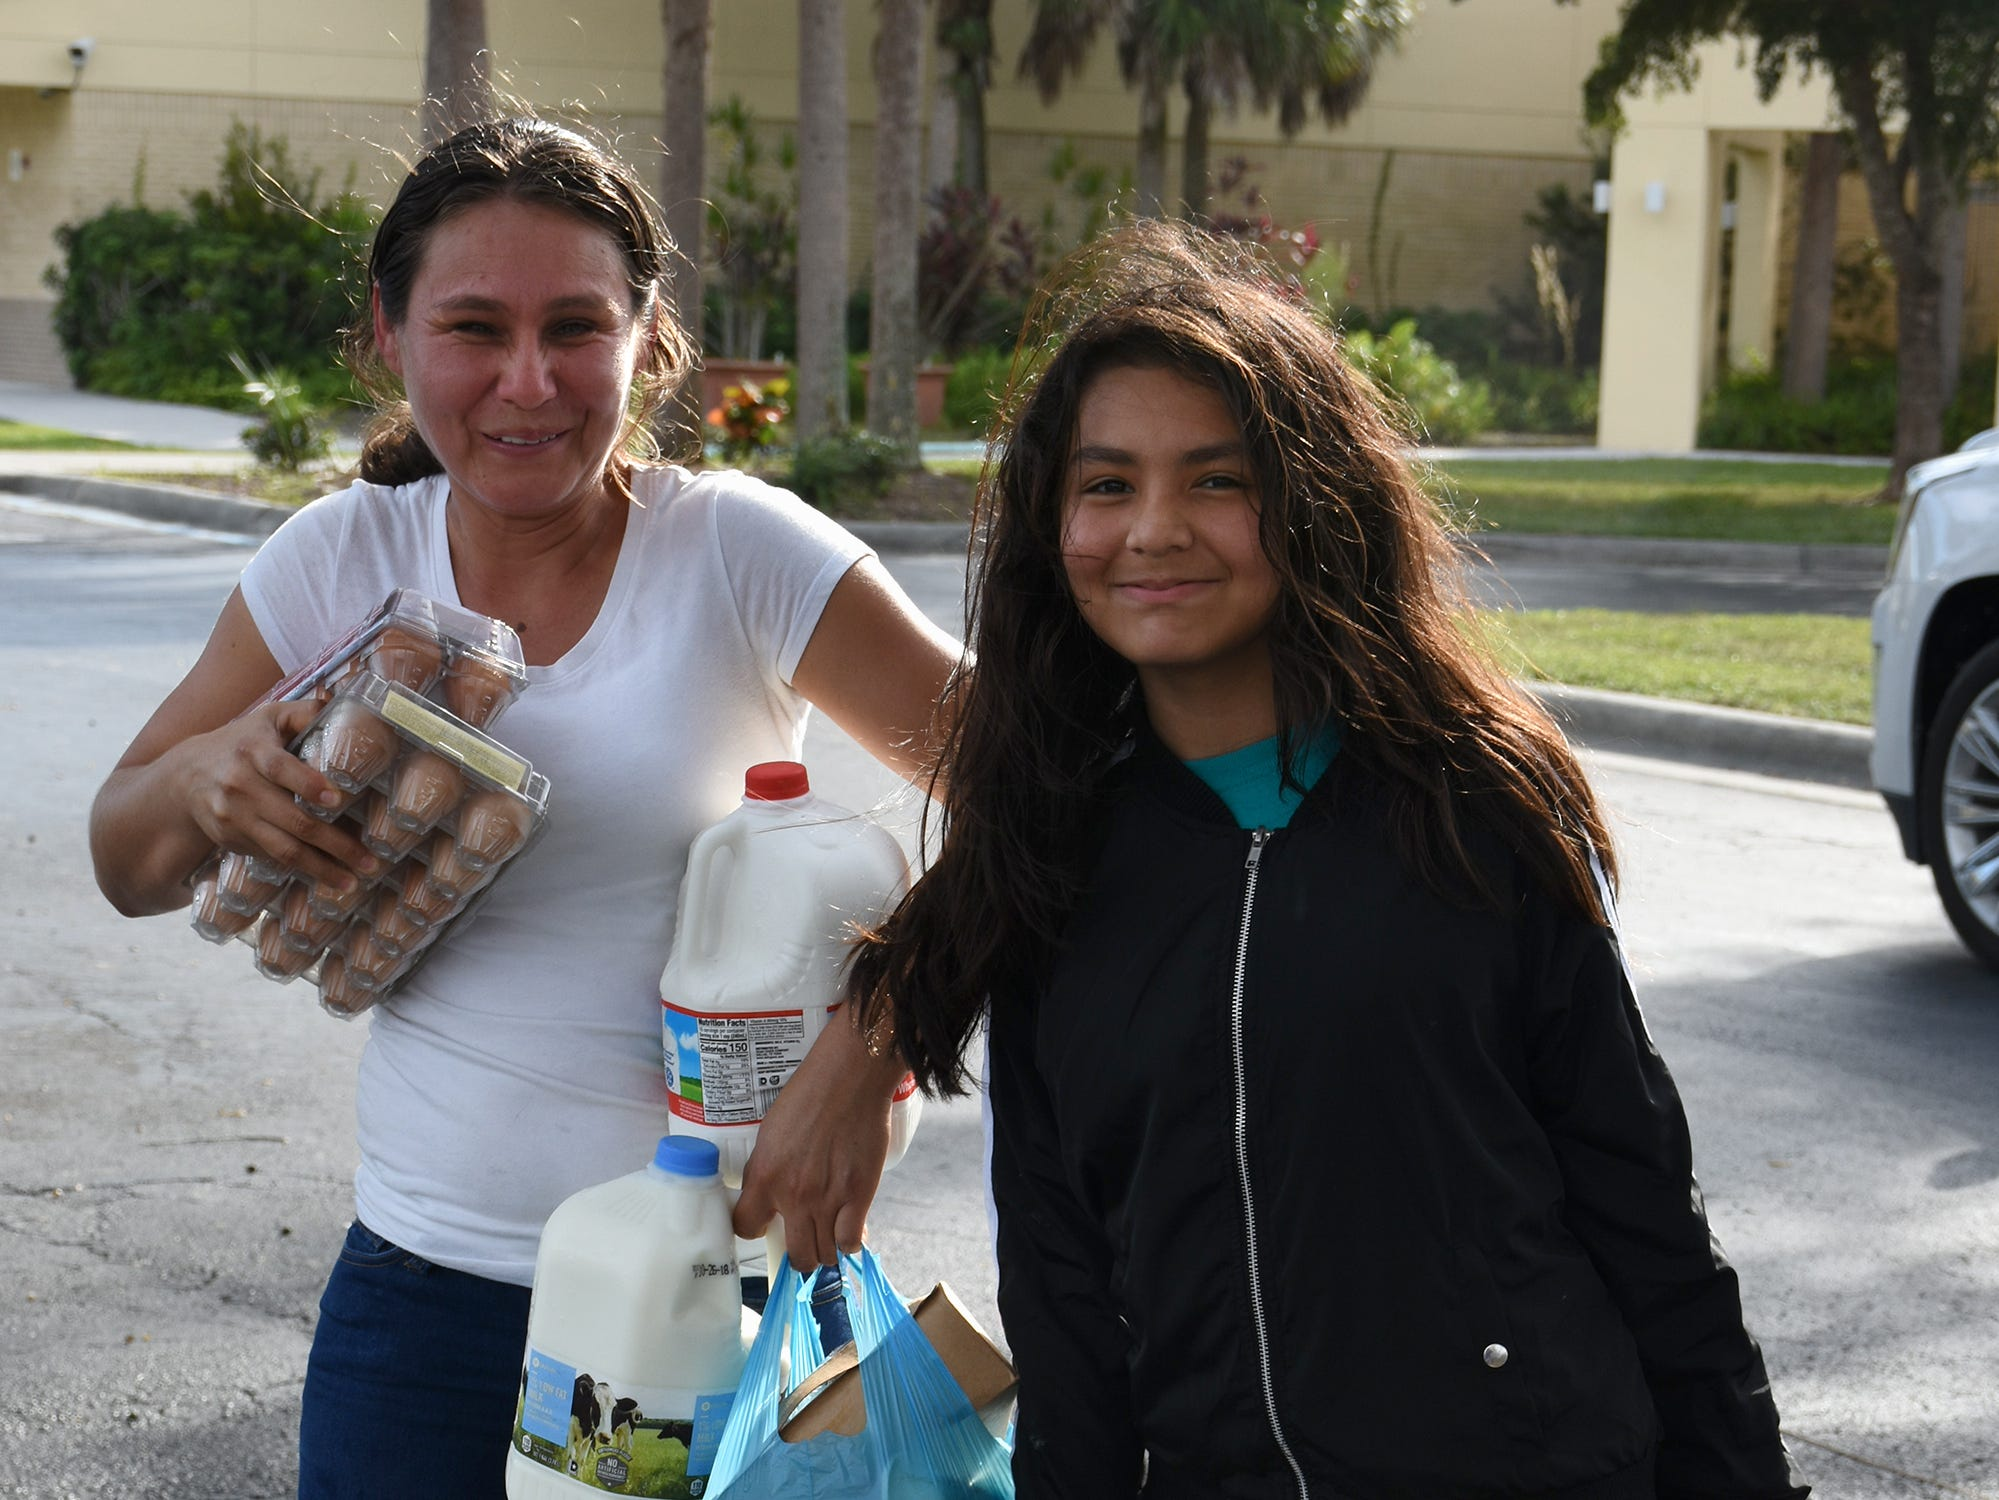 Erica Gutierrez, 11, and her mom Erica head out with their groceries. A group of Marco Island volunteers conducts a food pantry Friday afternoon at Manatee Middle School.